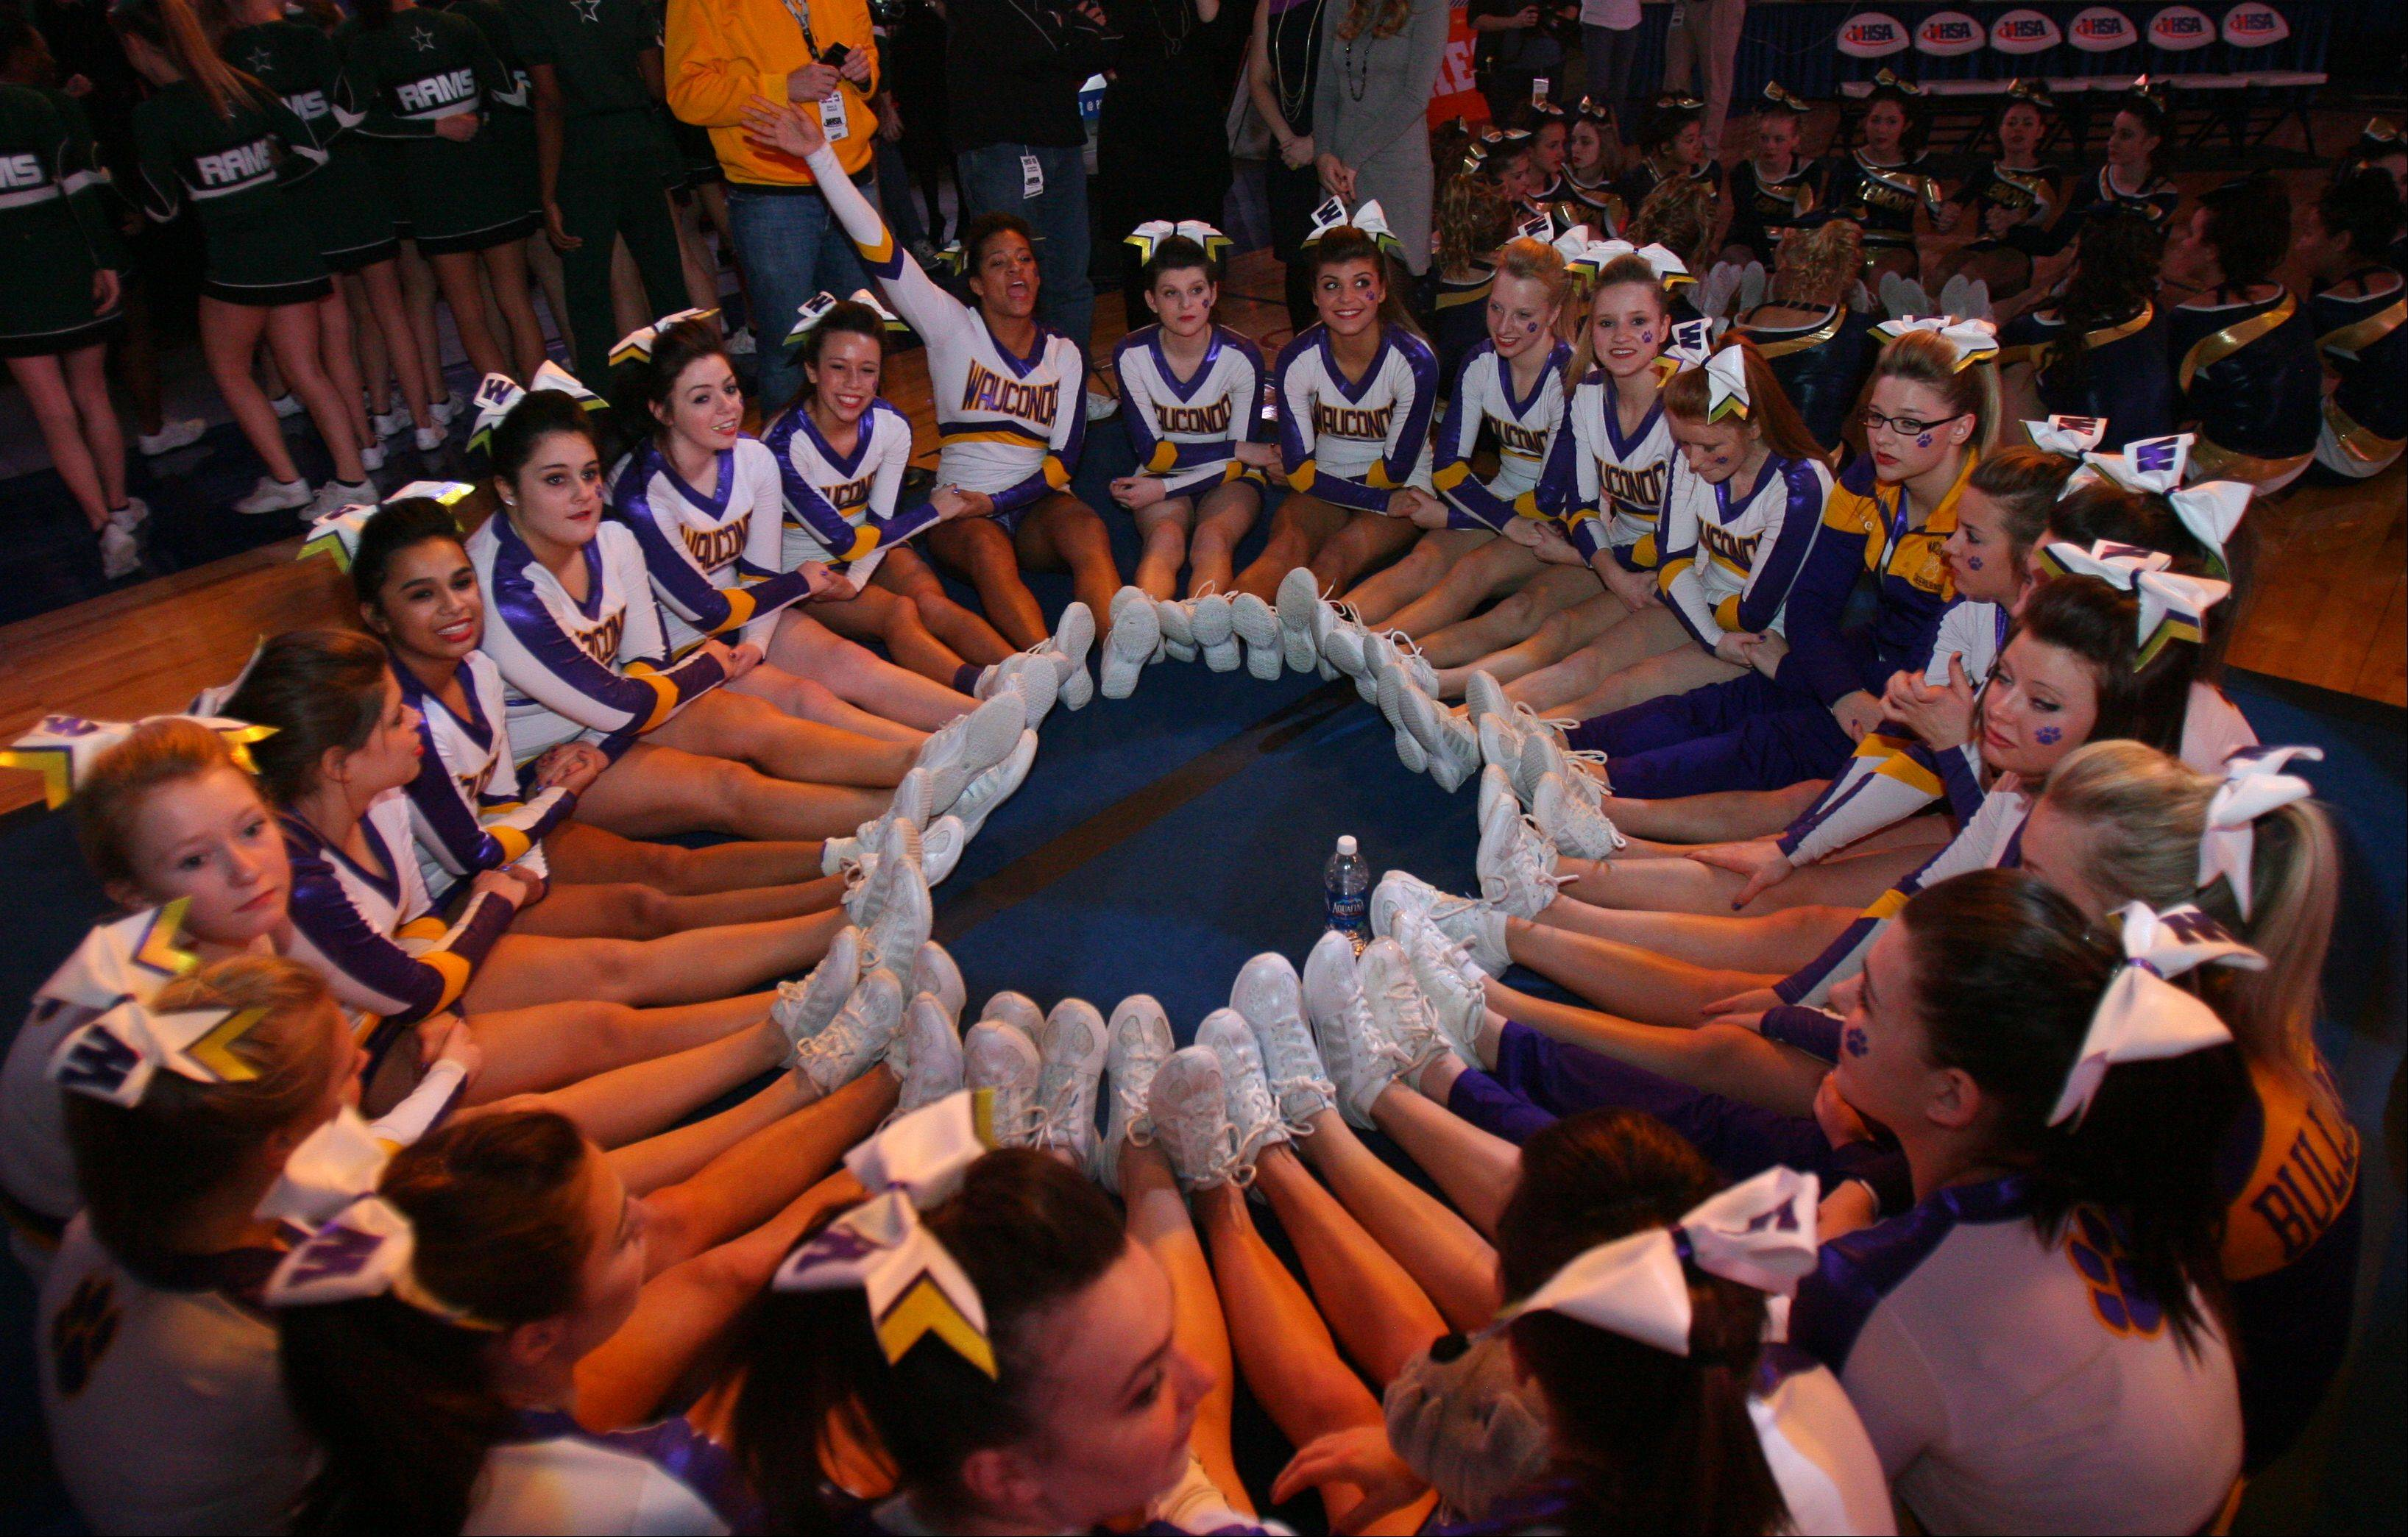 Wauconda High School waits for the results in the IHSA Competitive Cheerleading finals on Saturday, Feb. 2 at the U.S. Cellular Coliseum in Bloomington.